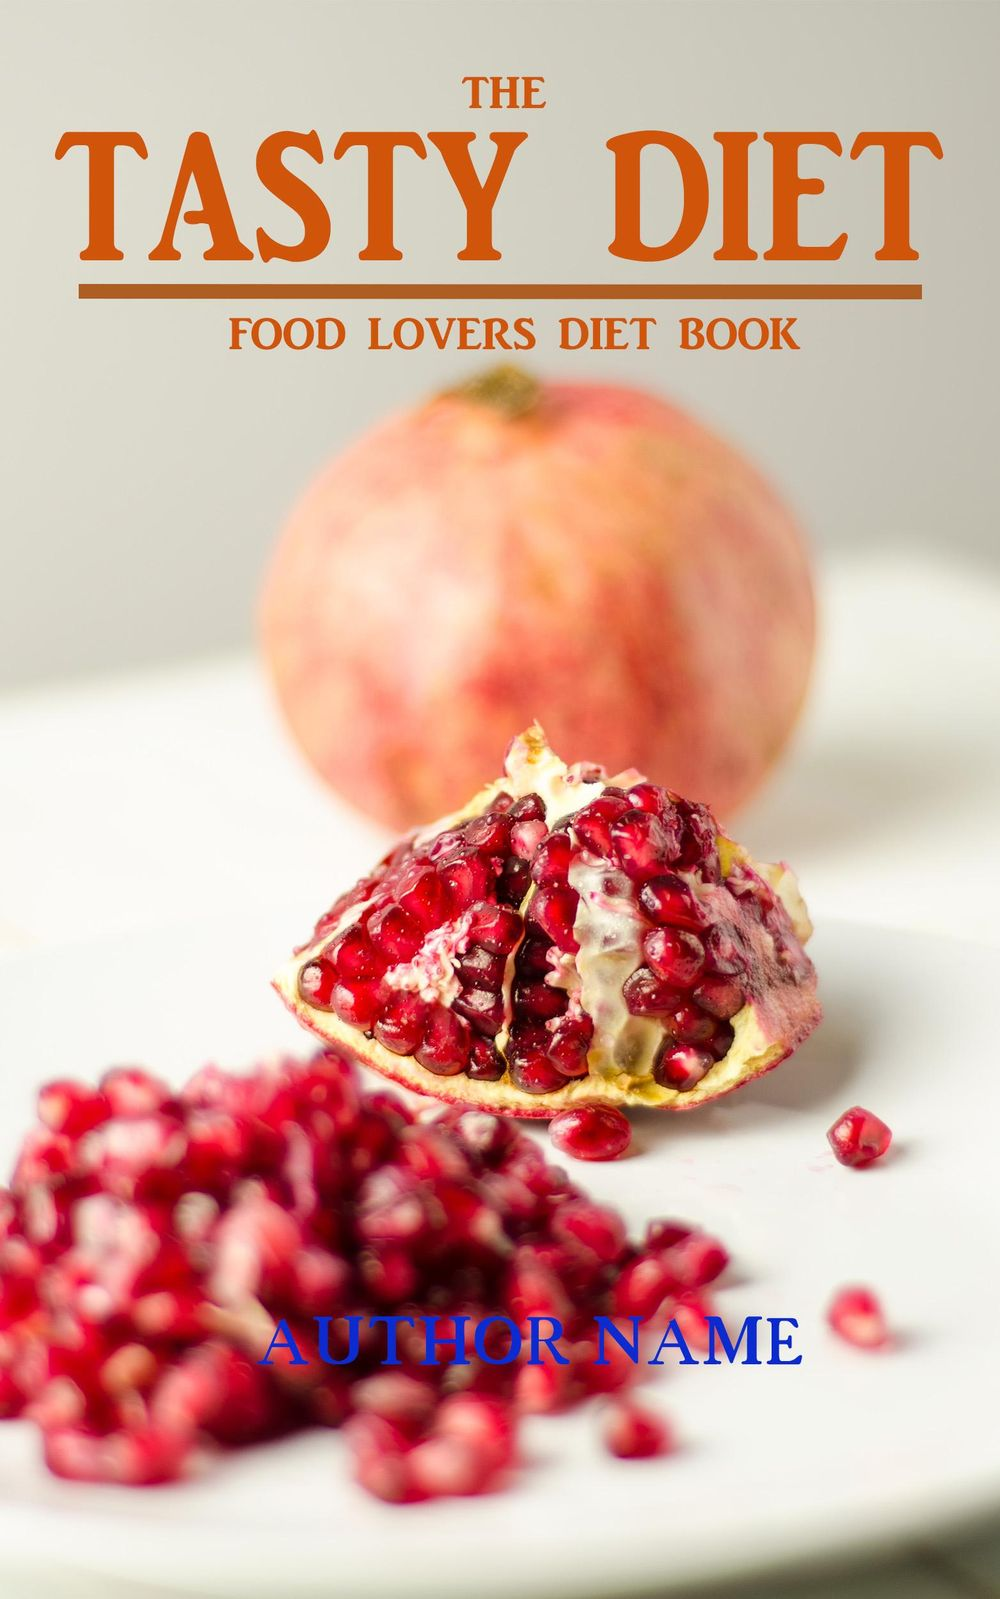 Diet recipes - image 1 - student project